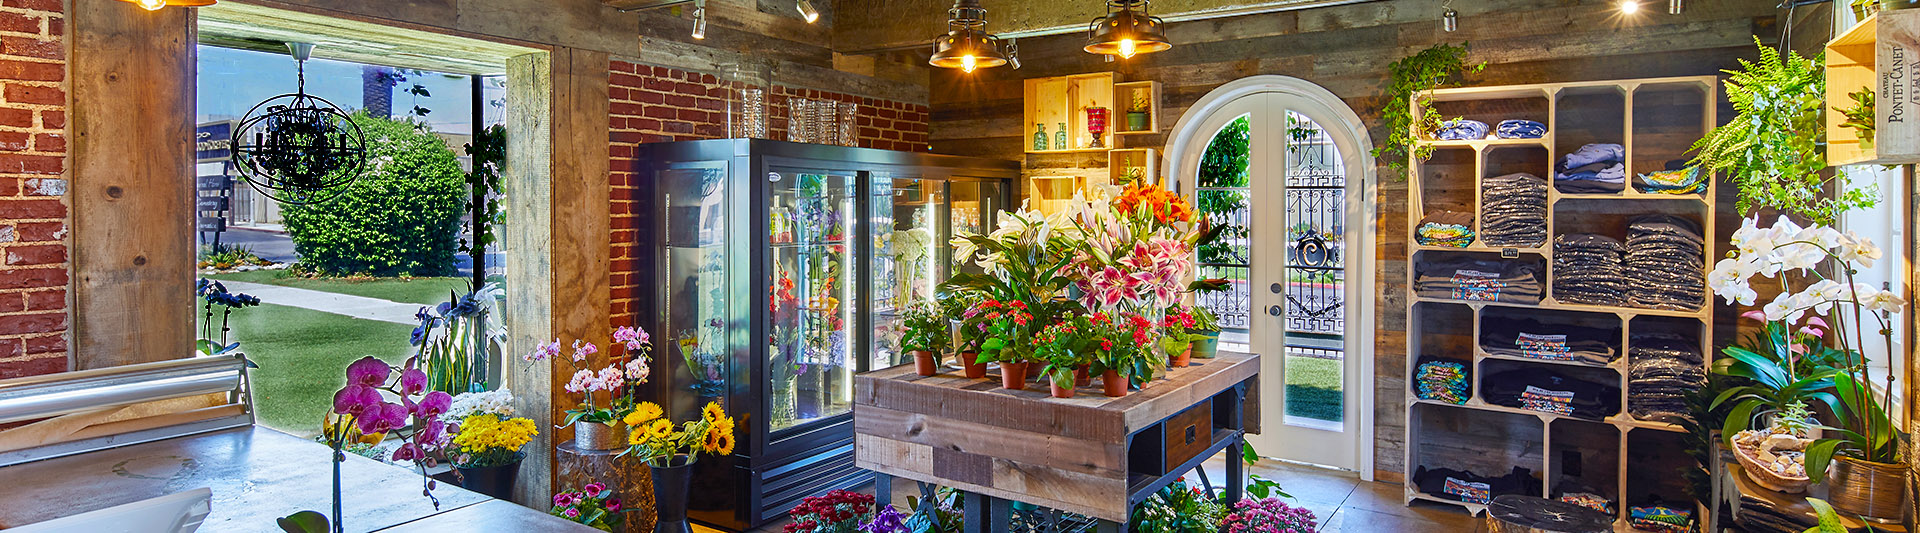 , Flower Shop Old